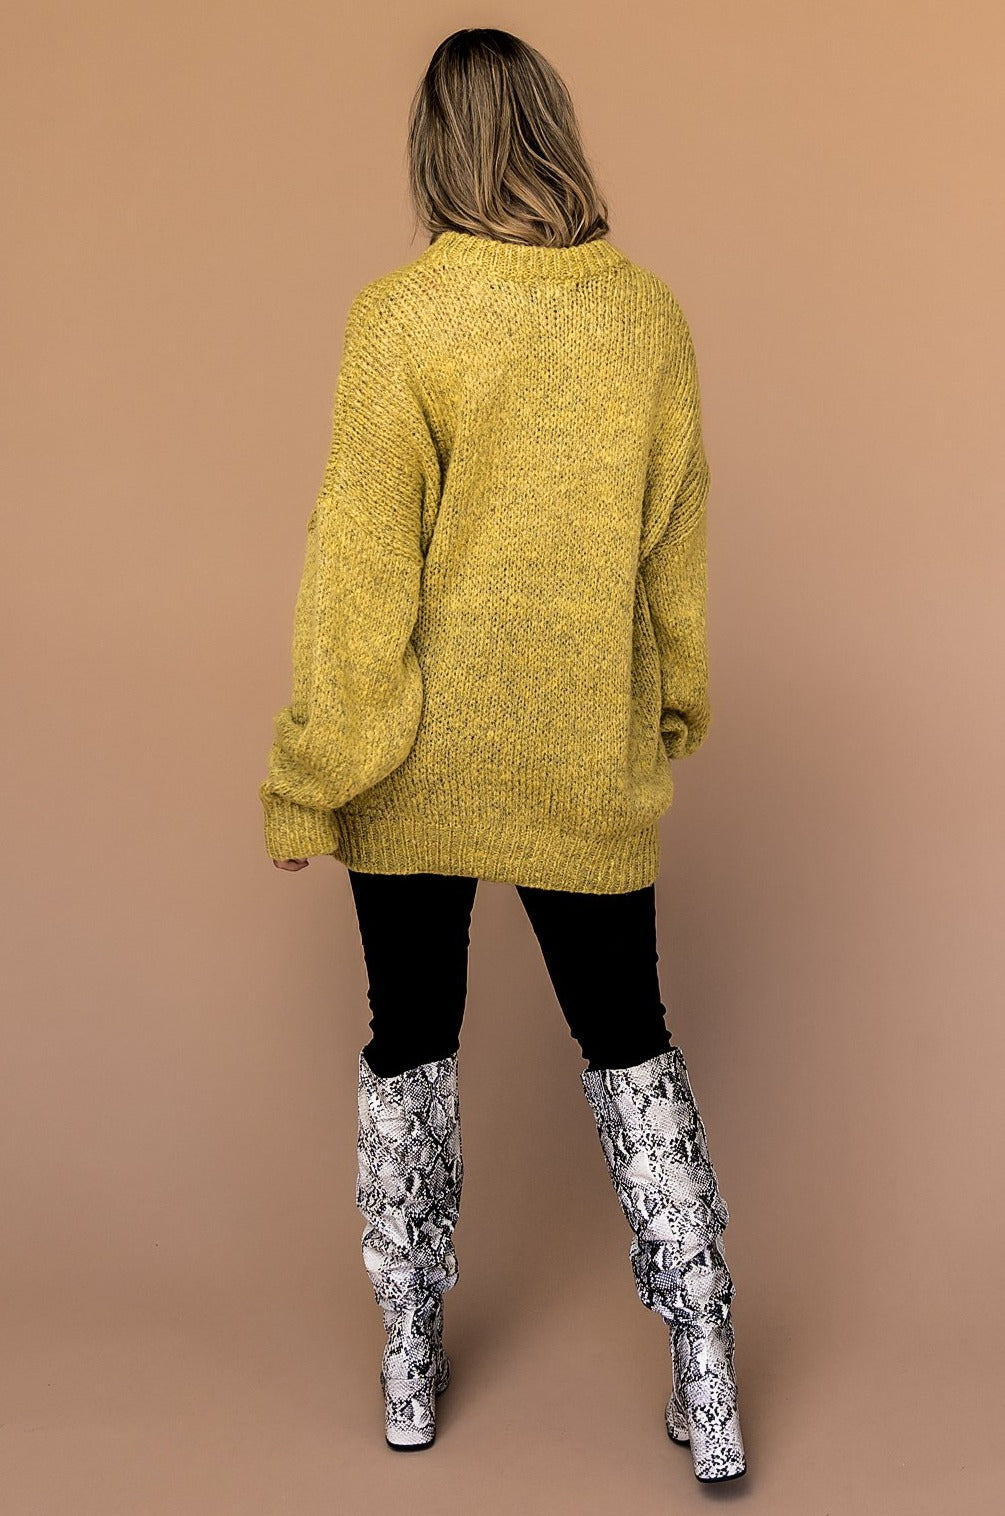 Fall in Love Oversized Knit in Honey